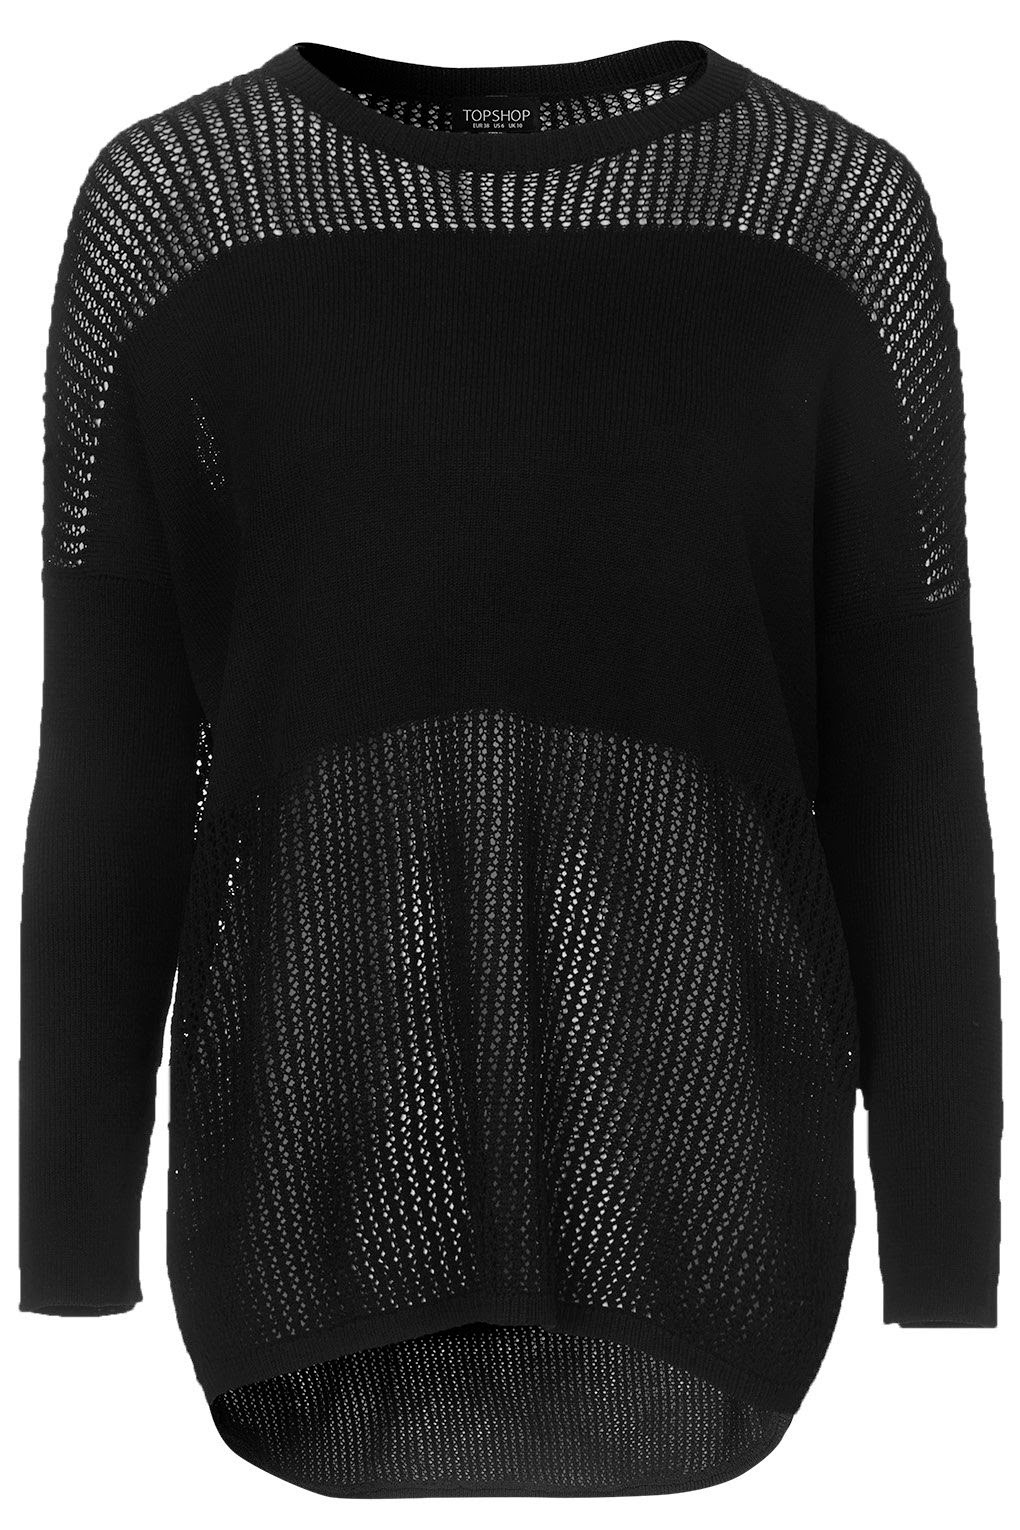 black mesh jumper